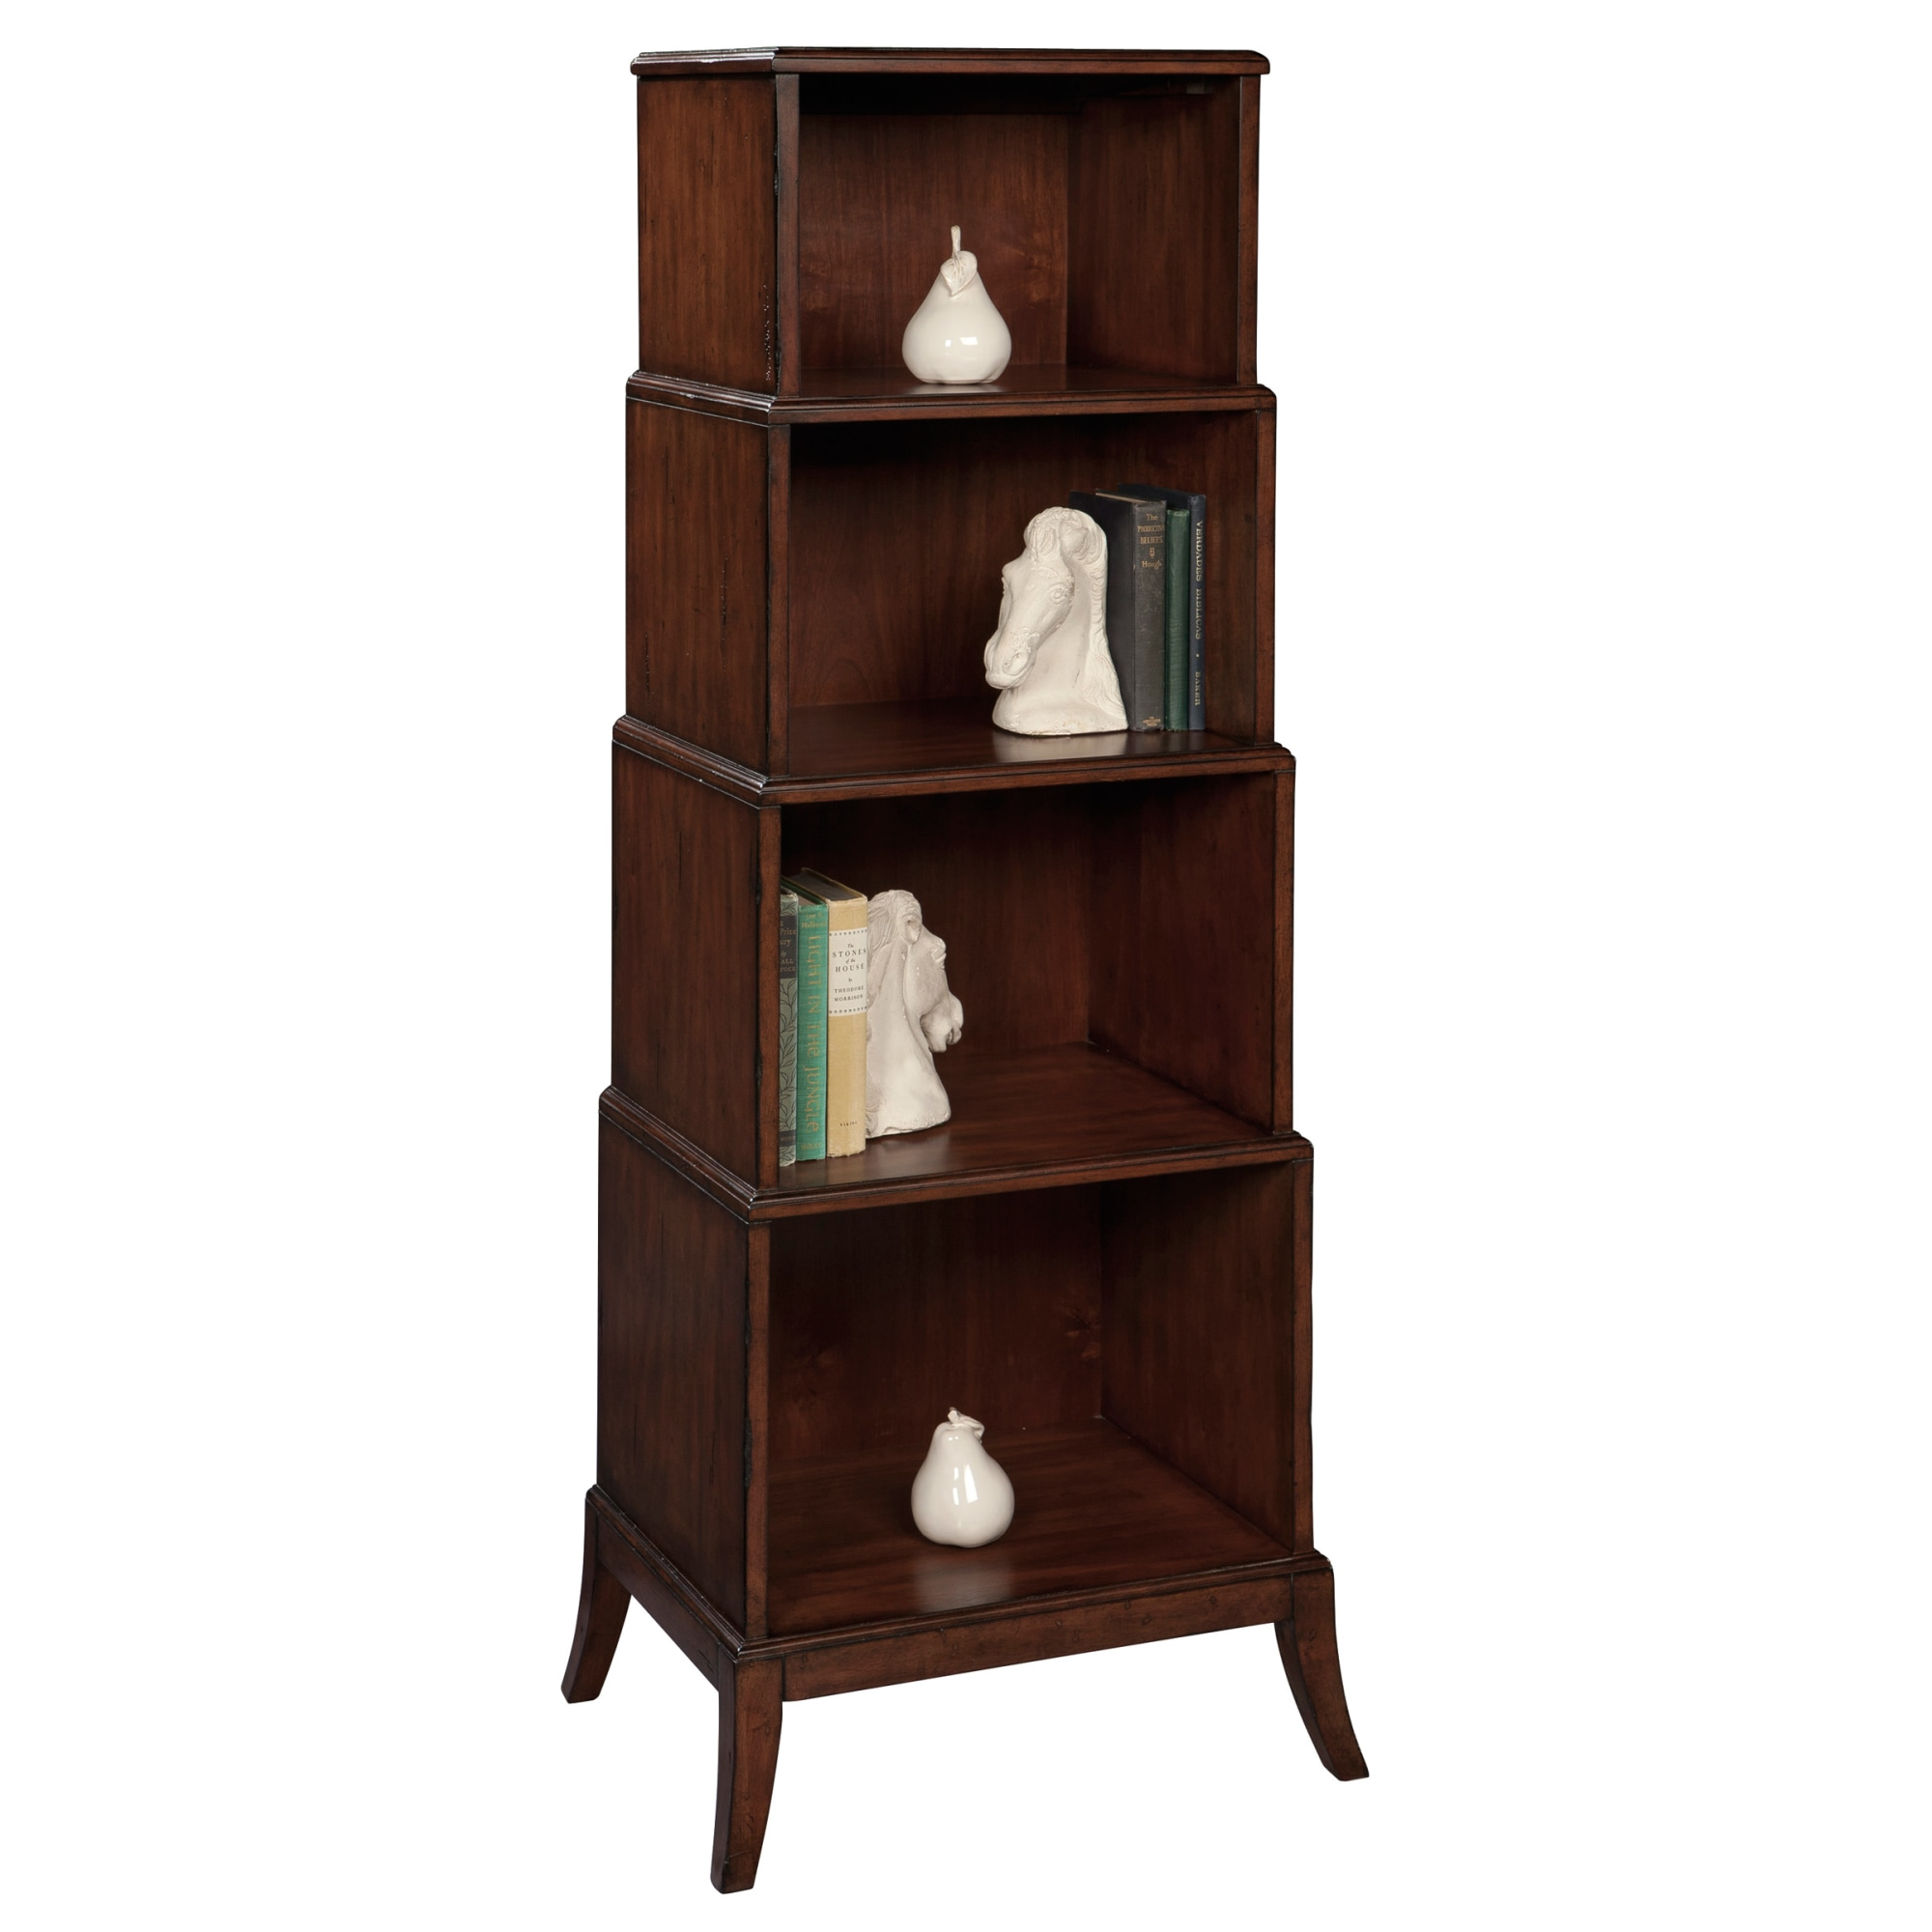 Image for 2-7221 Tiered Bookcase from Hekman Official Website